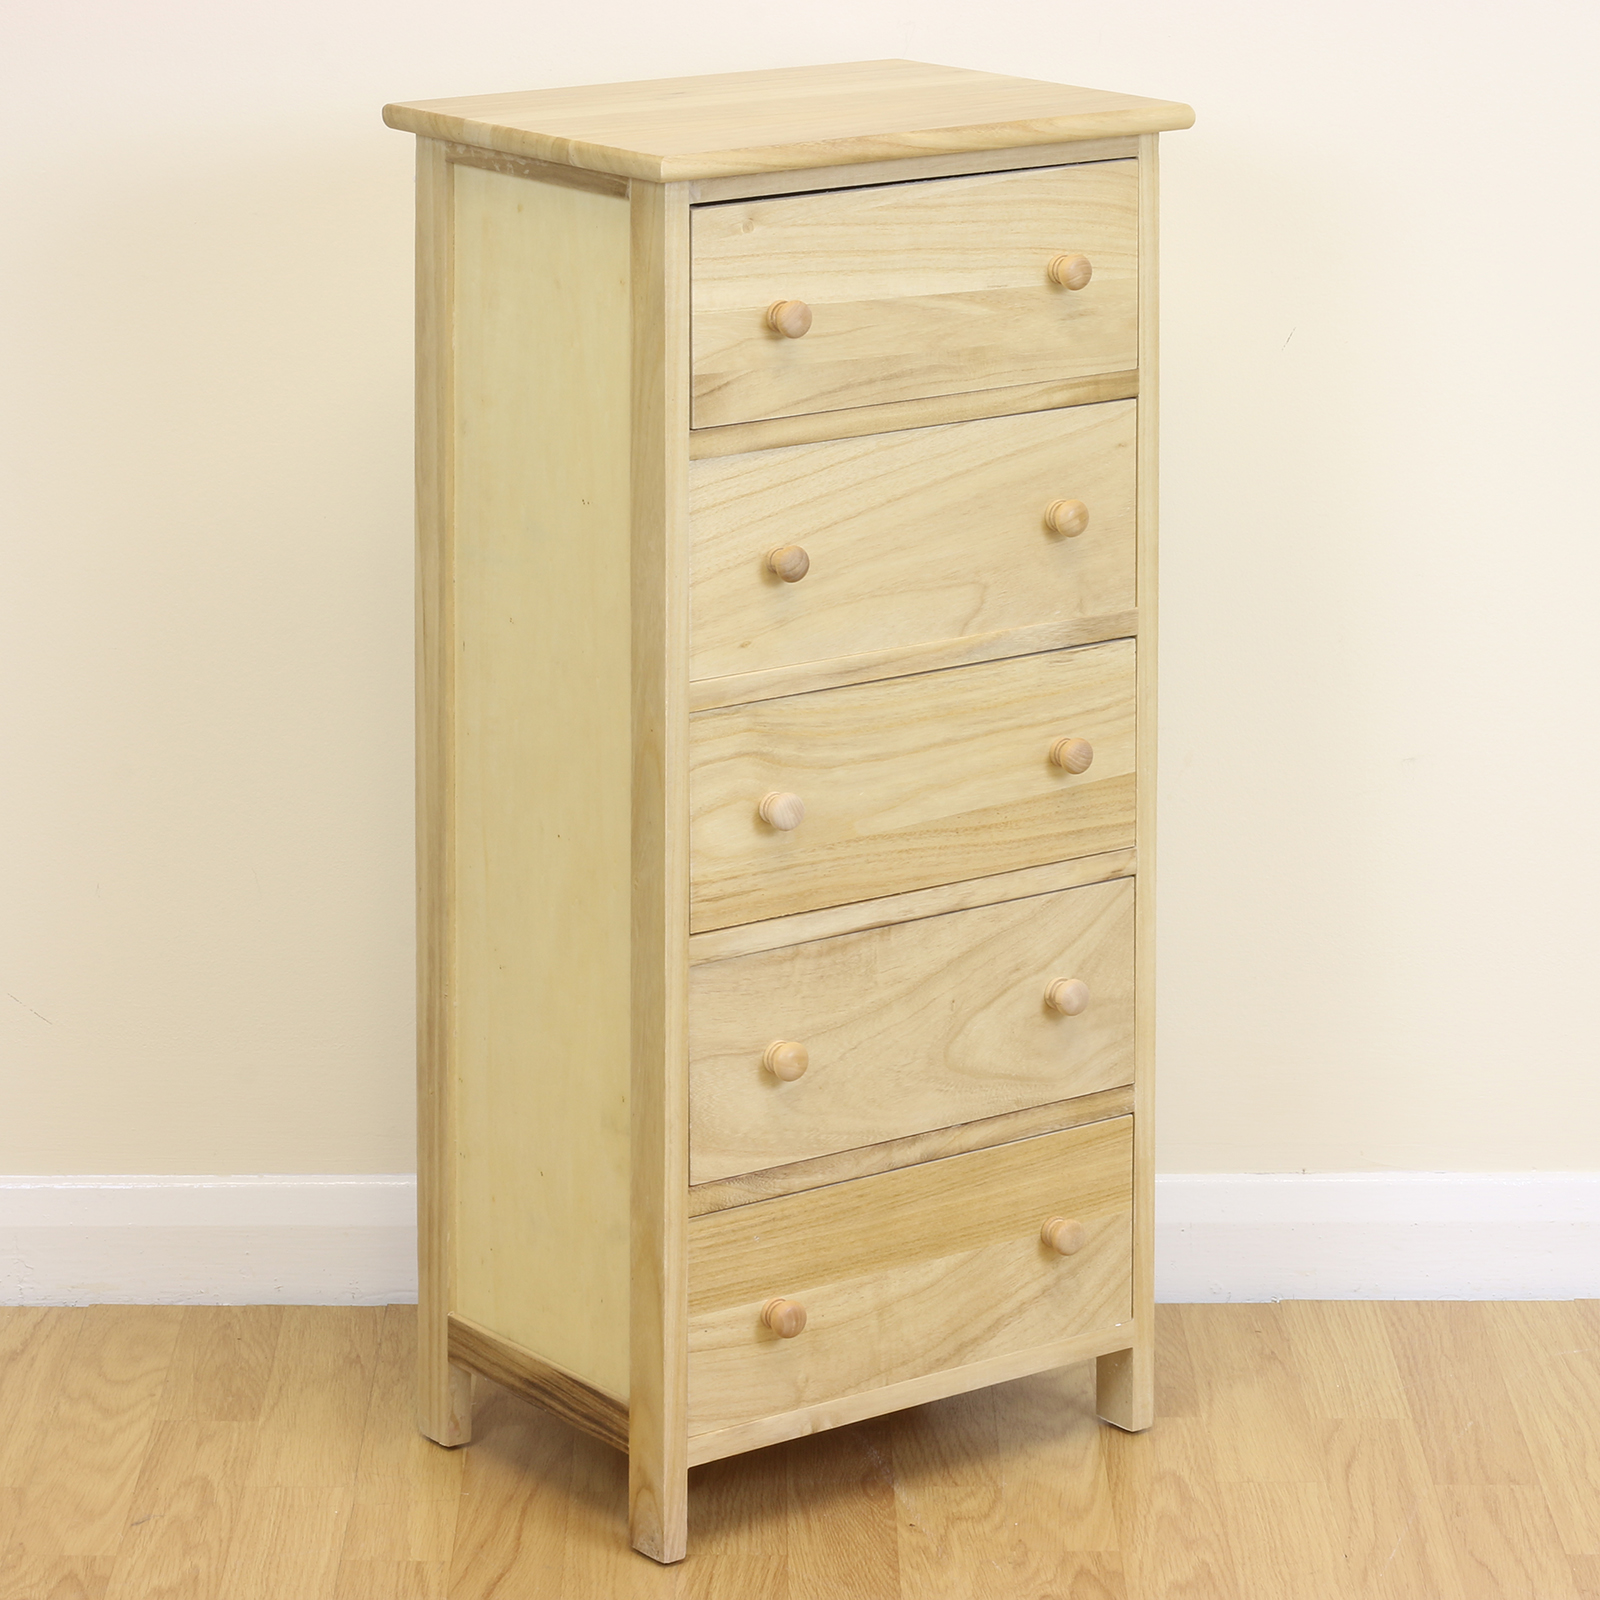 Wonderful image of Details about   Wooden 5 Chest Of Drawers Narrow Tallboy Bedroom  with #492B14 color and 1600x1600 pixels